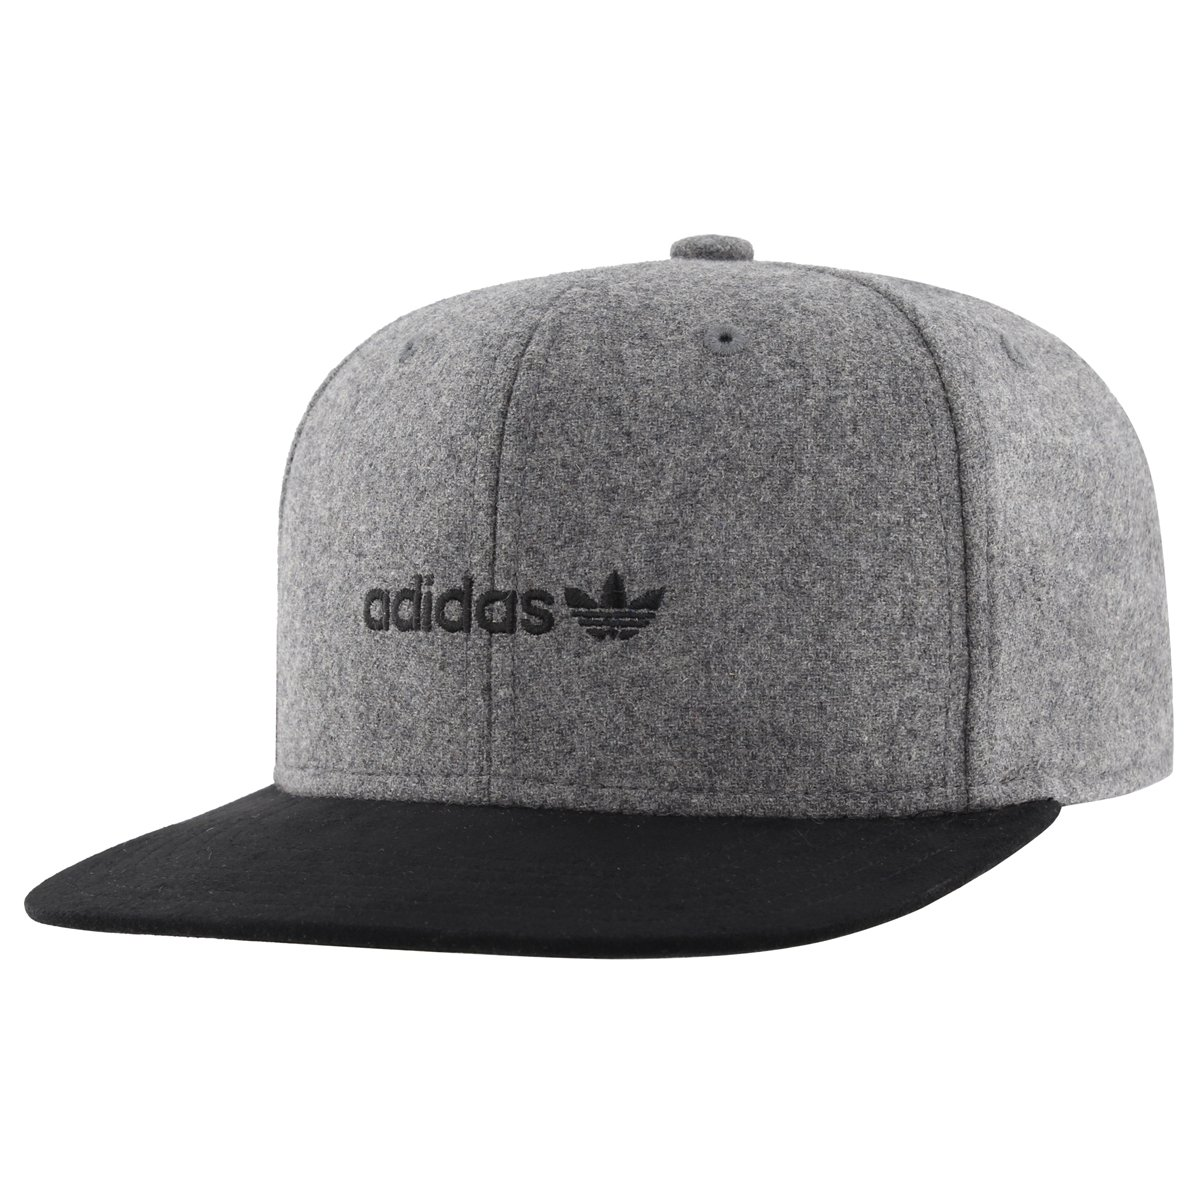 Galleon - Adidas Men s Originals Snapback Flatbrim Cap e70ab64a29b